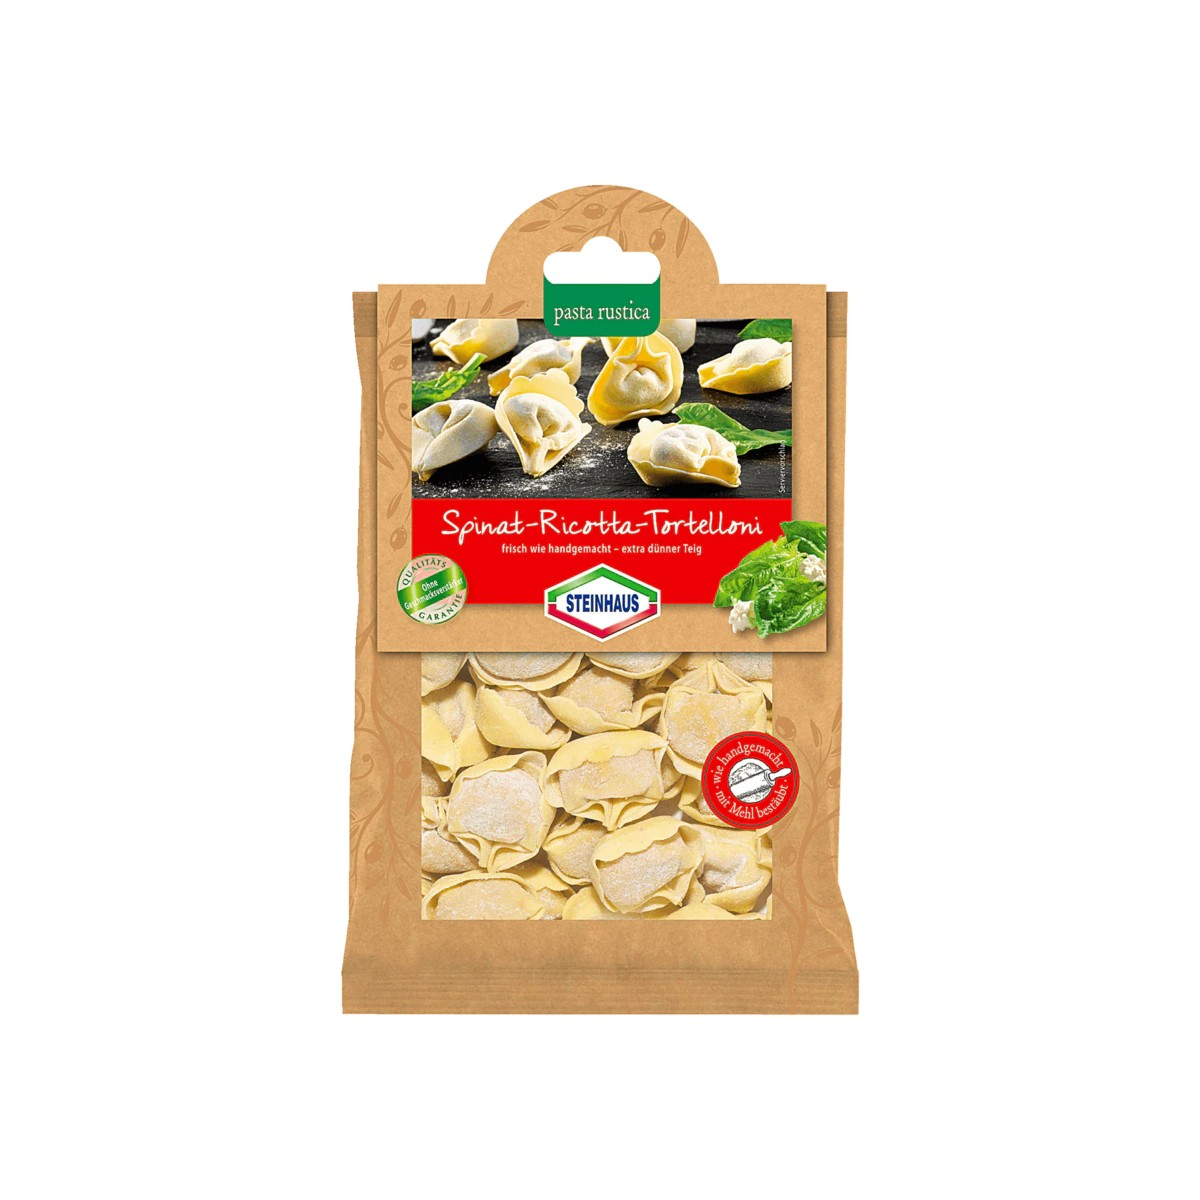 Buy Steinhaus Spinat-Ricotta-Tortelloni in Berlin with delivery